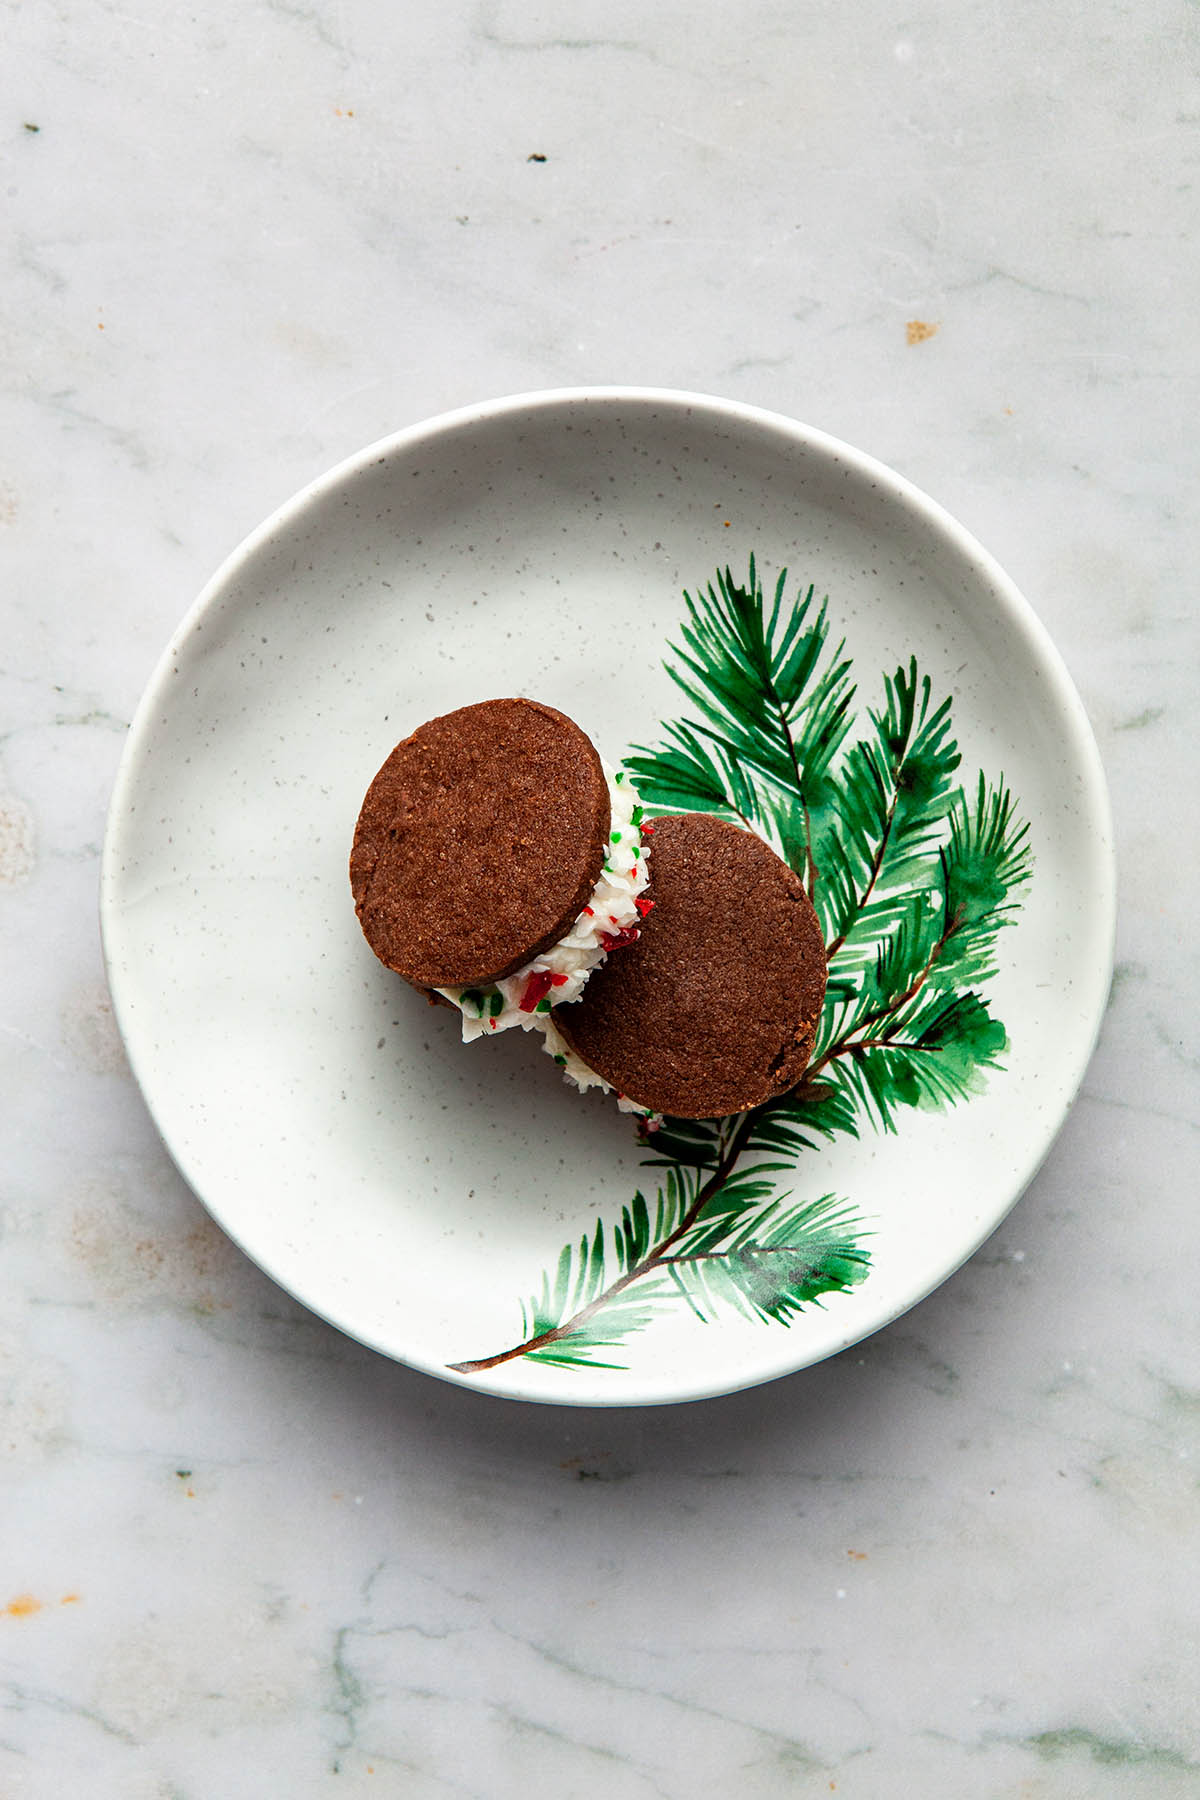 Two chocolate shortbread sandwich cookies on a small white plate with an evergreen branch painted on it.